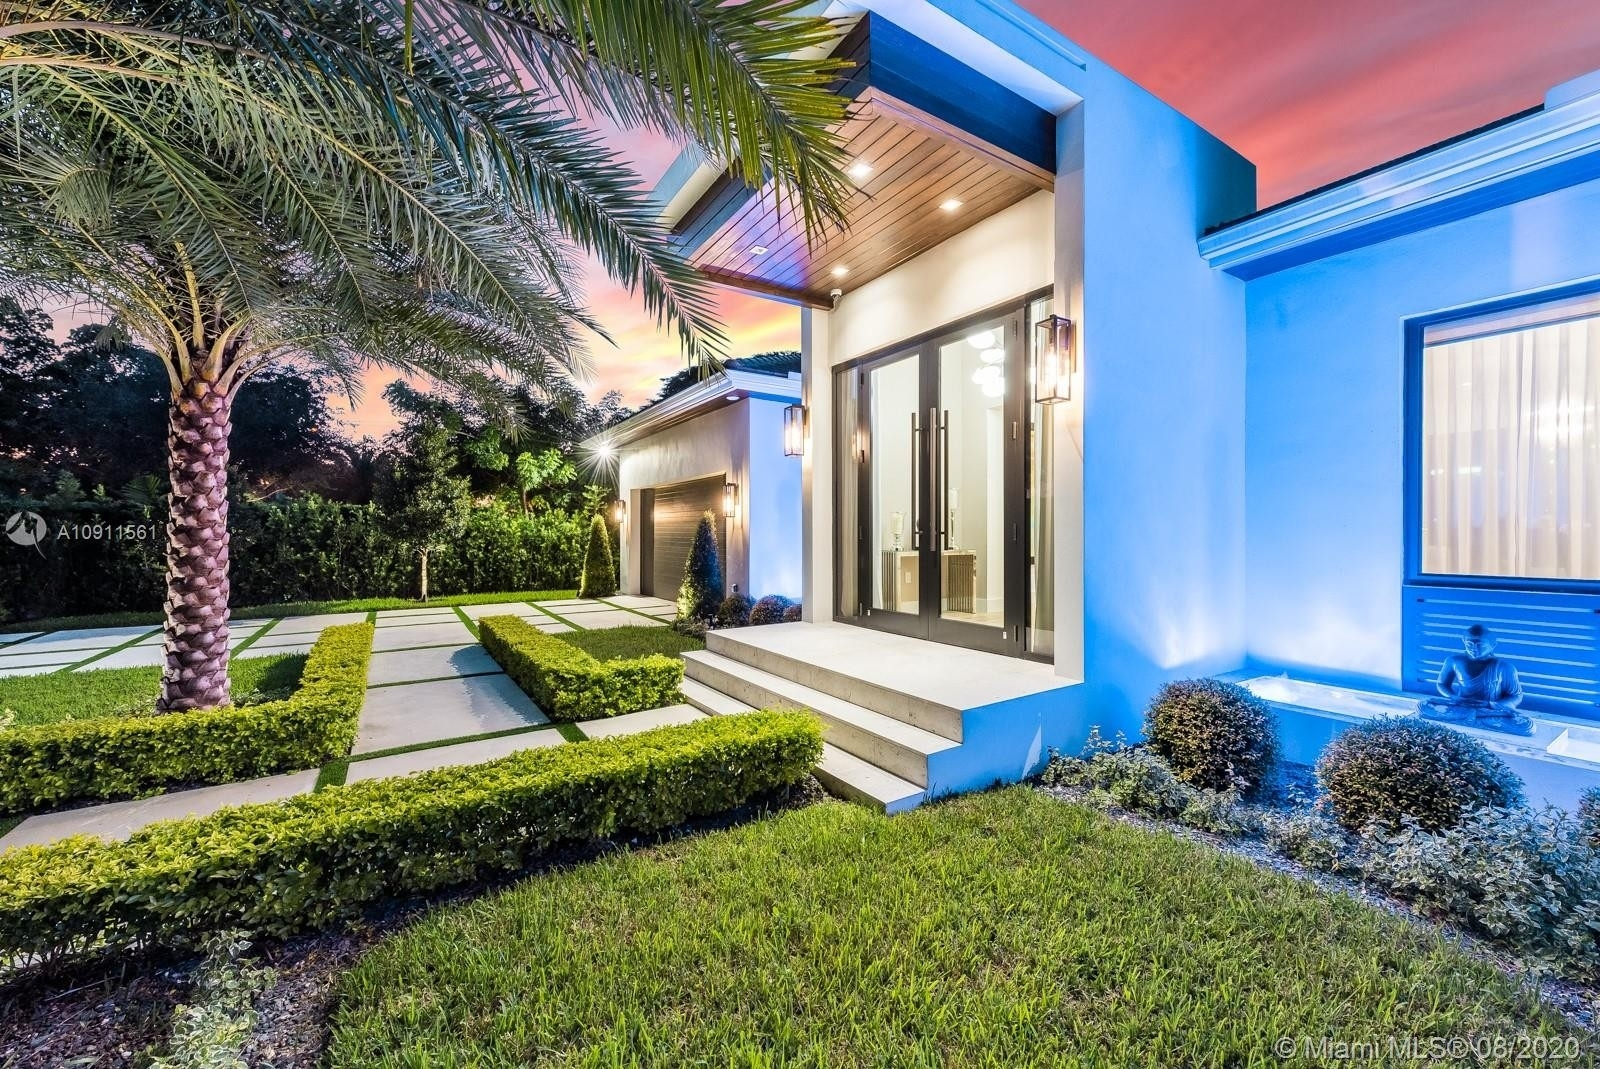 13. Single Family Homes for Sale at Riviera, Coral Gables, FL 33146